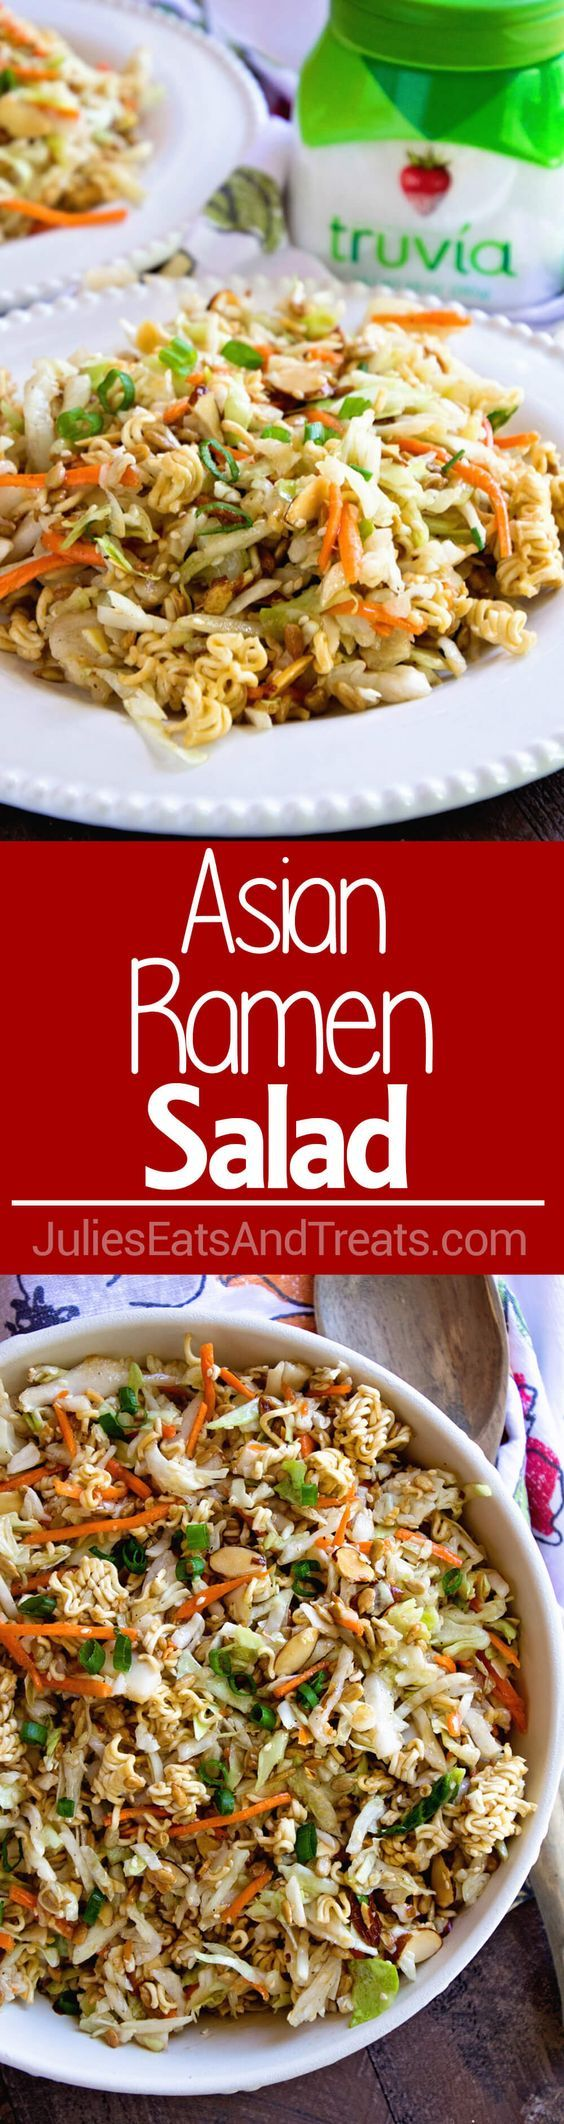 Asian Ramen Salad ~ quick, easy and full of flavor, this is the perfect potluck salad that only takes minutes to throw together!